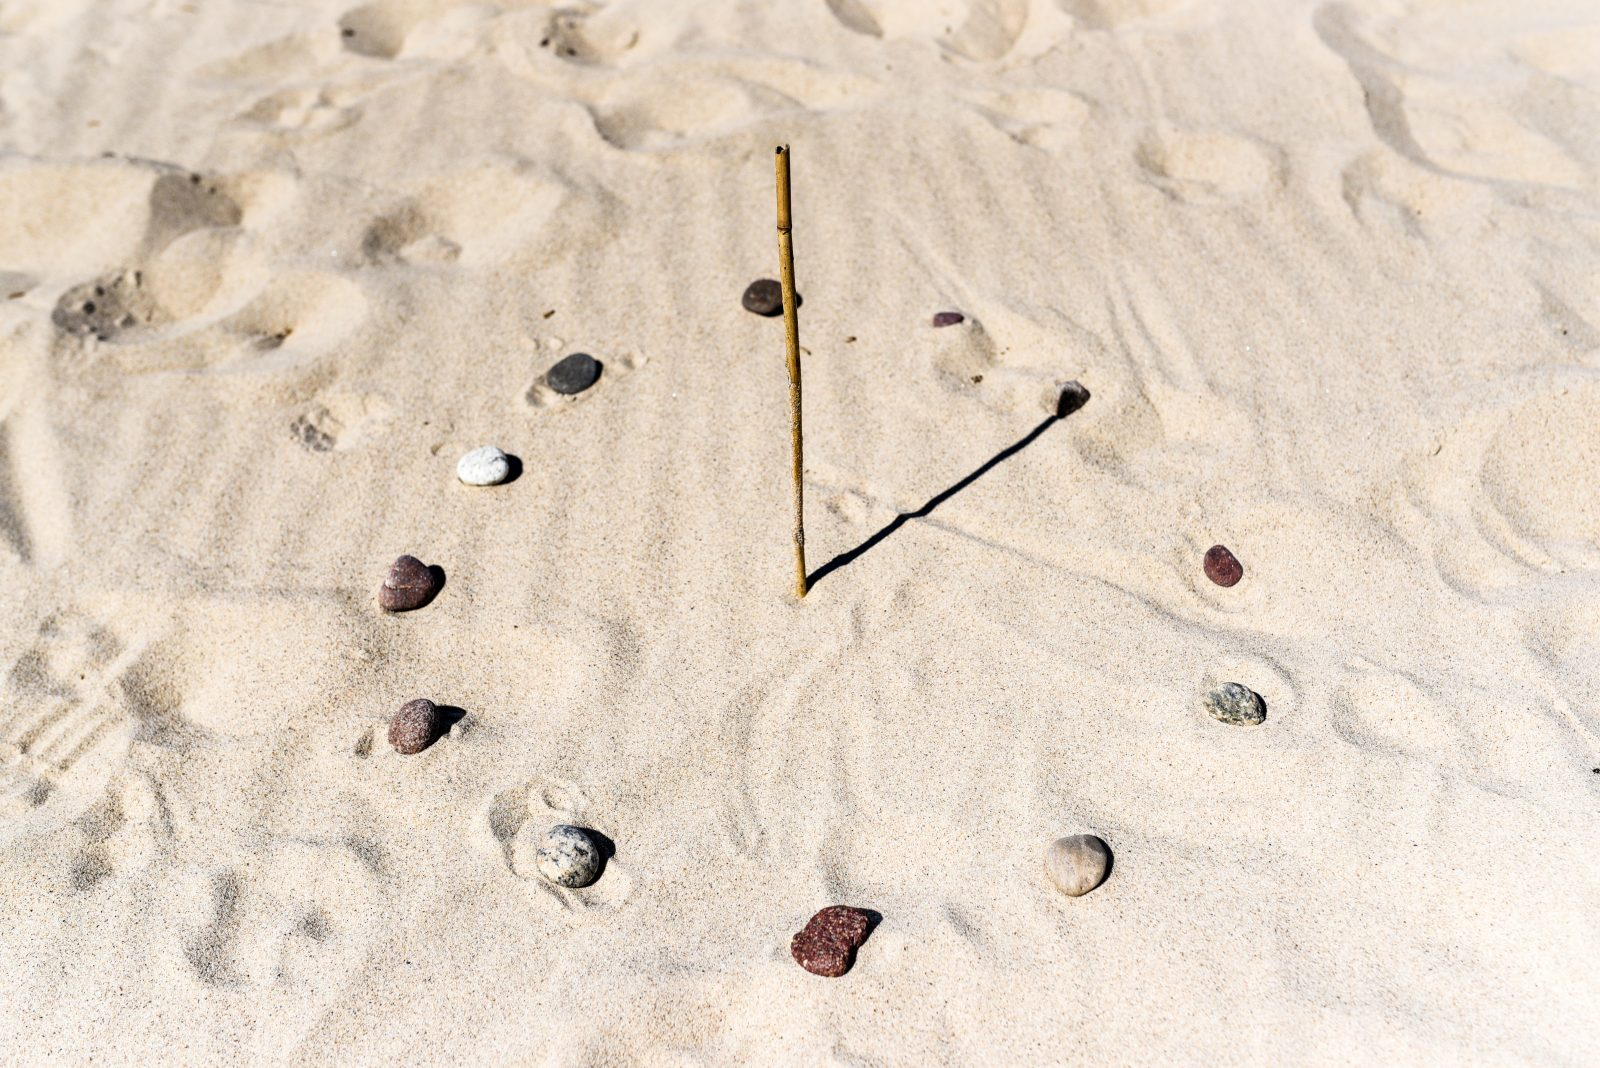 Sundial on the beach made of a stick and stones.